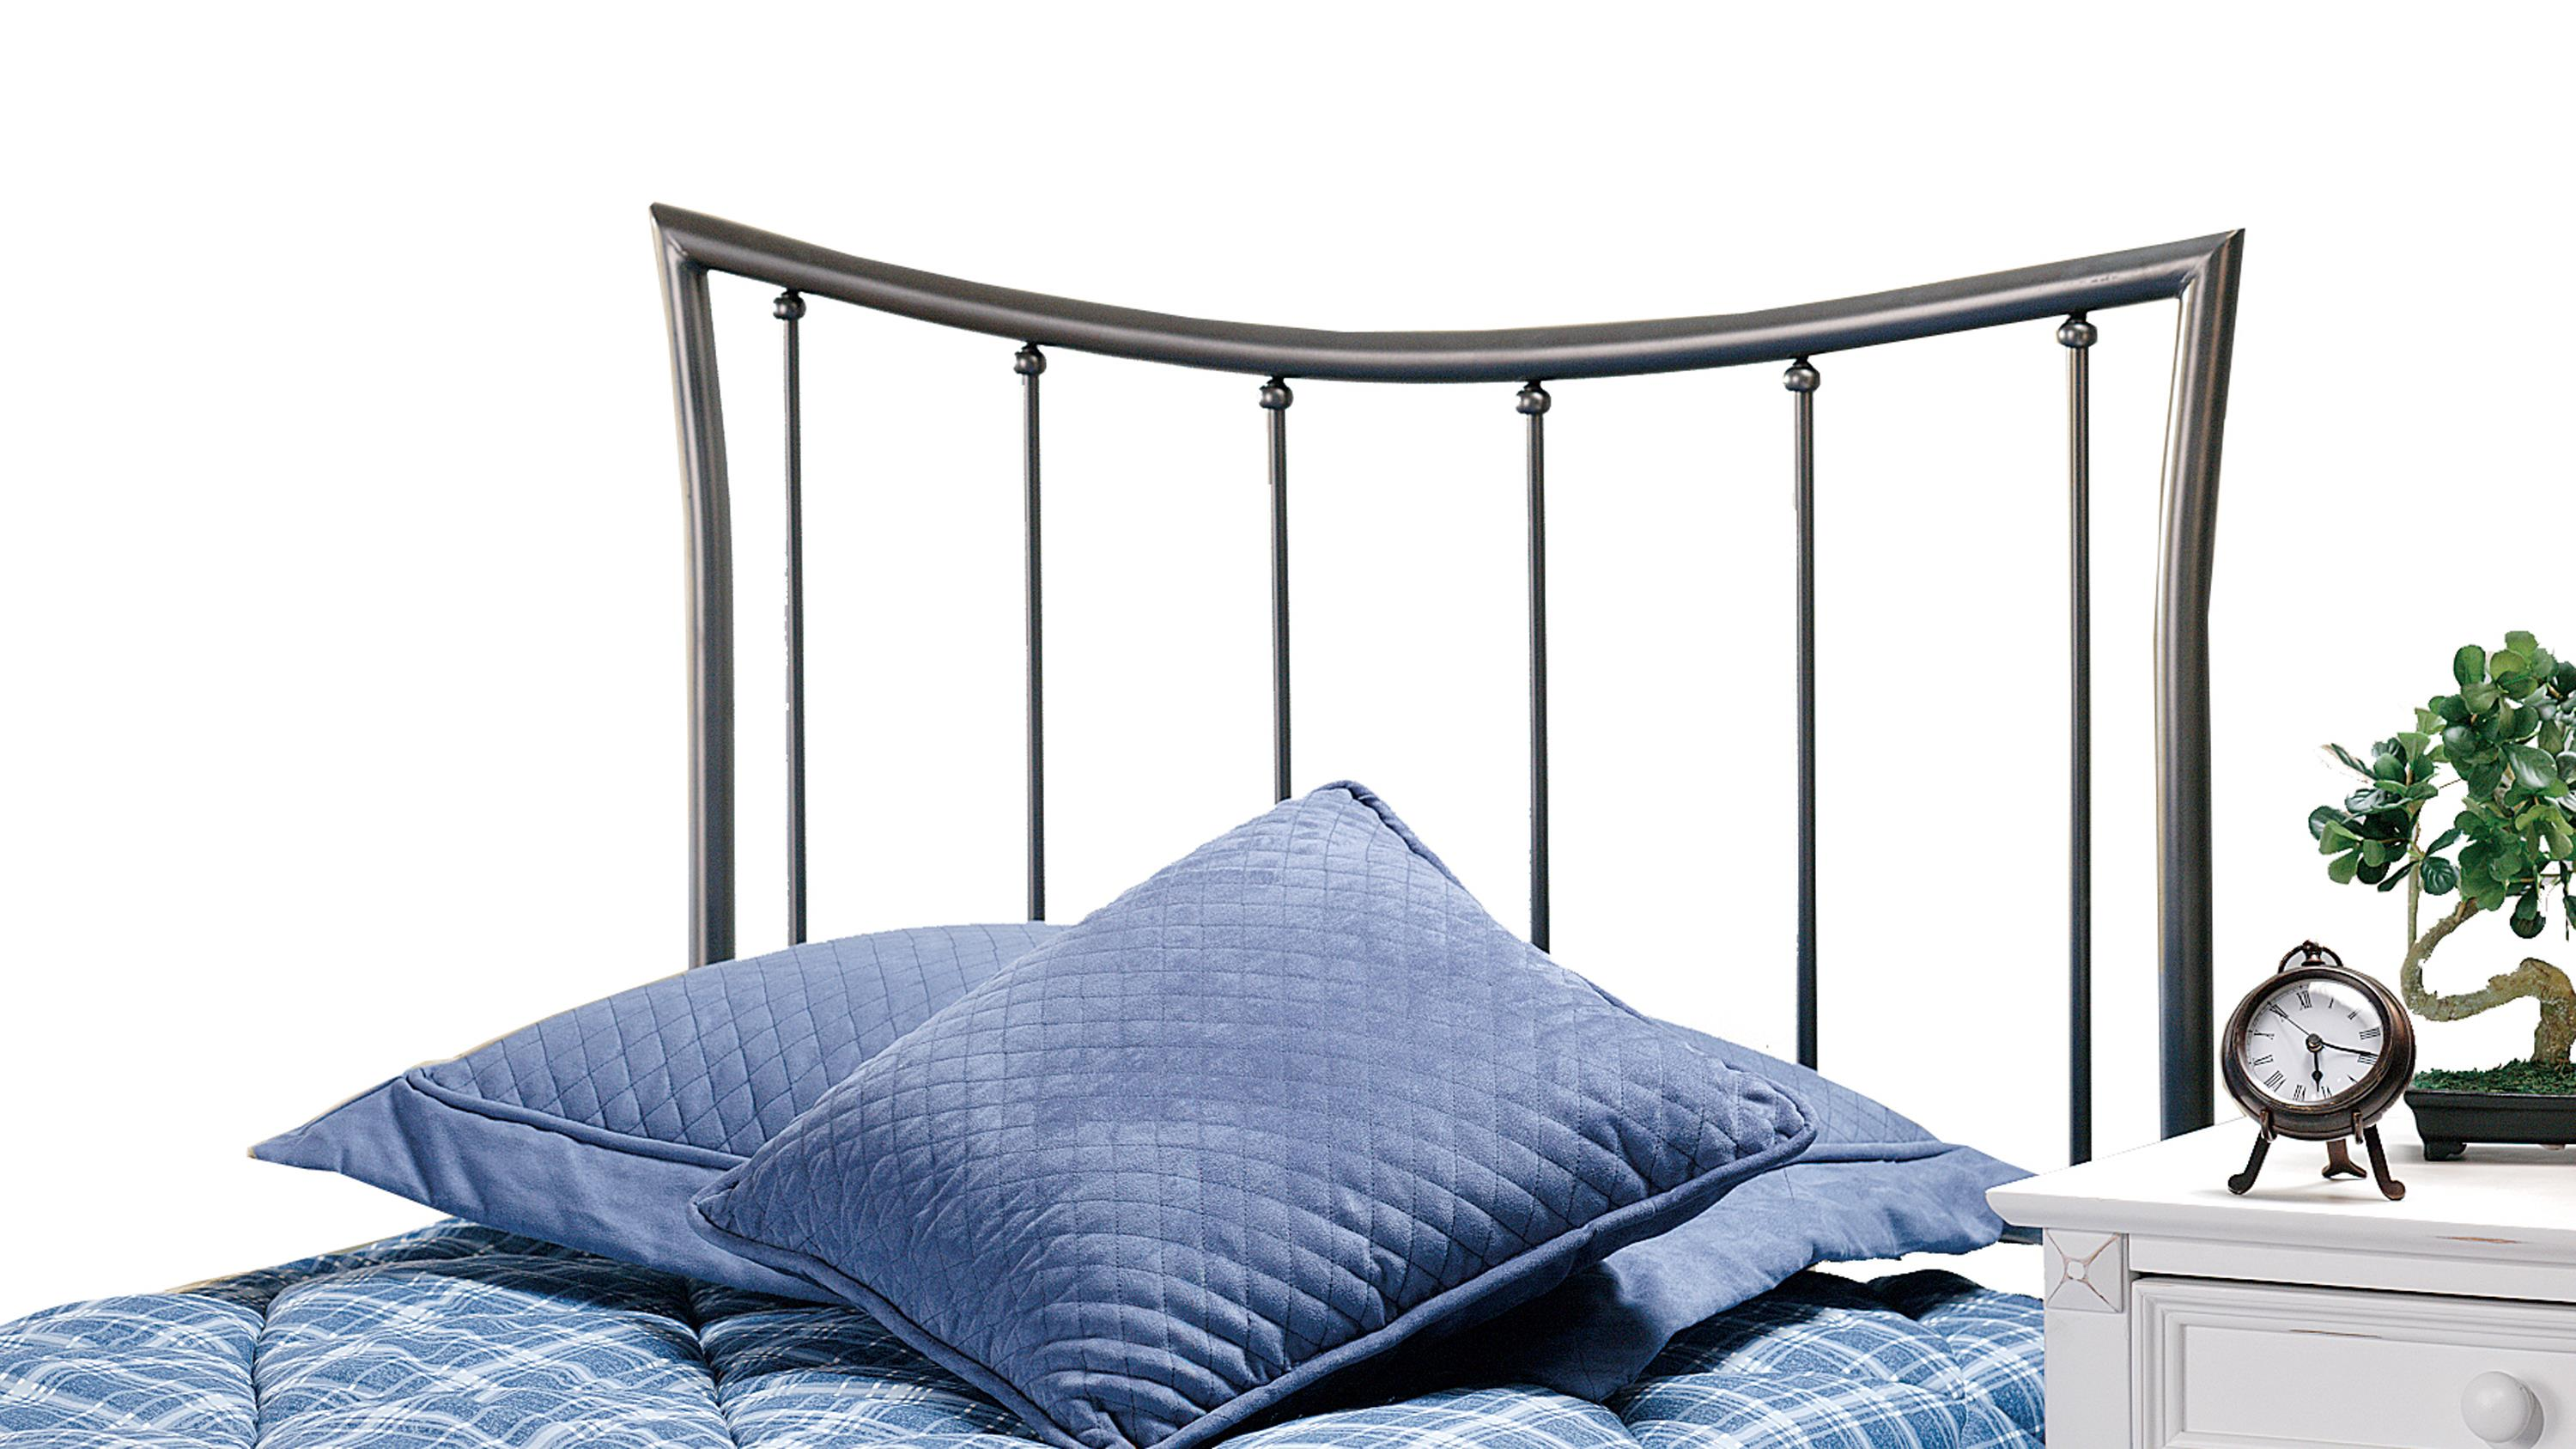 Hillsdale Metal Beds Edgewood King Headboard with Rails - Item Number: 1333HKR